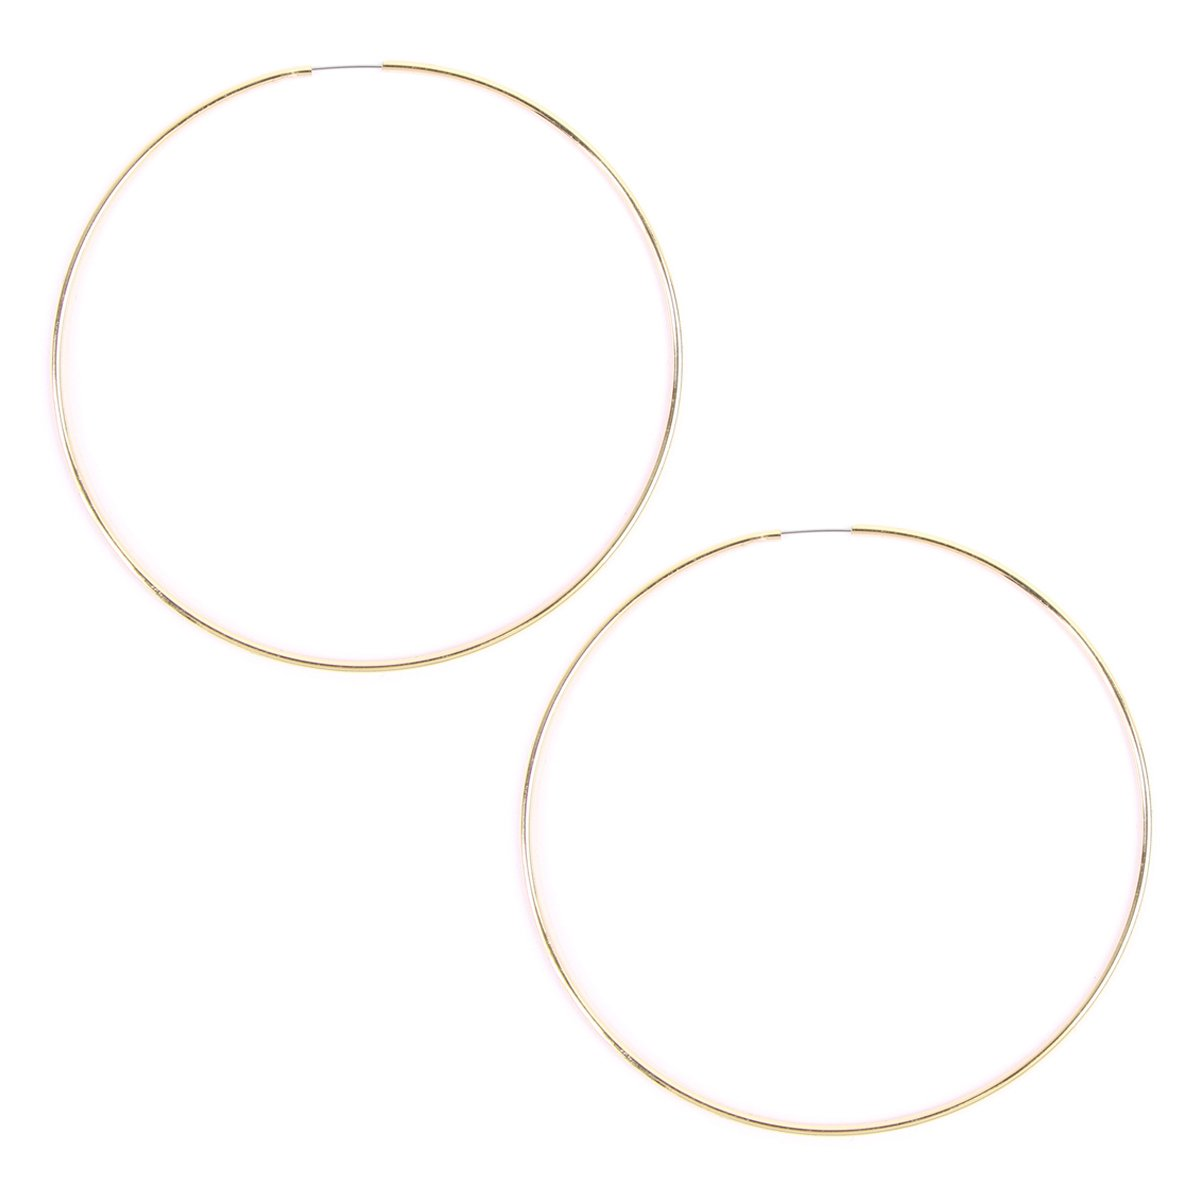 RIAH FASHION Lightweight Endless Hoop Earrings - Round Circle Seamless Thin Hoops (Round Hoop 1 - Gold - Large)